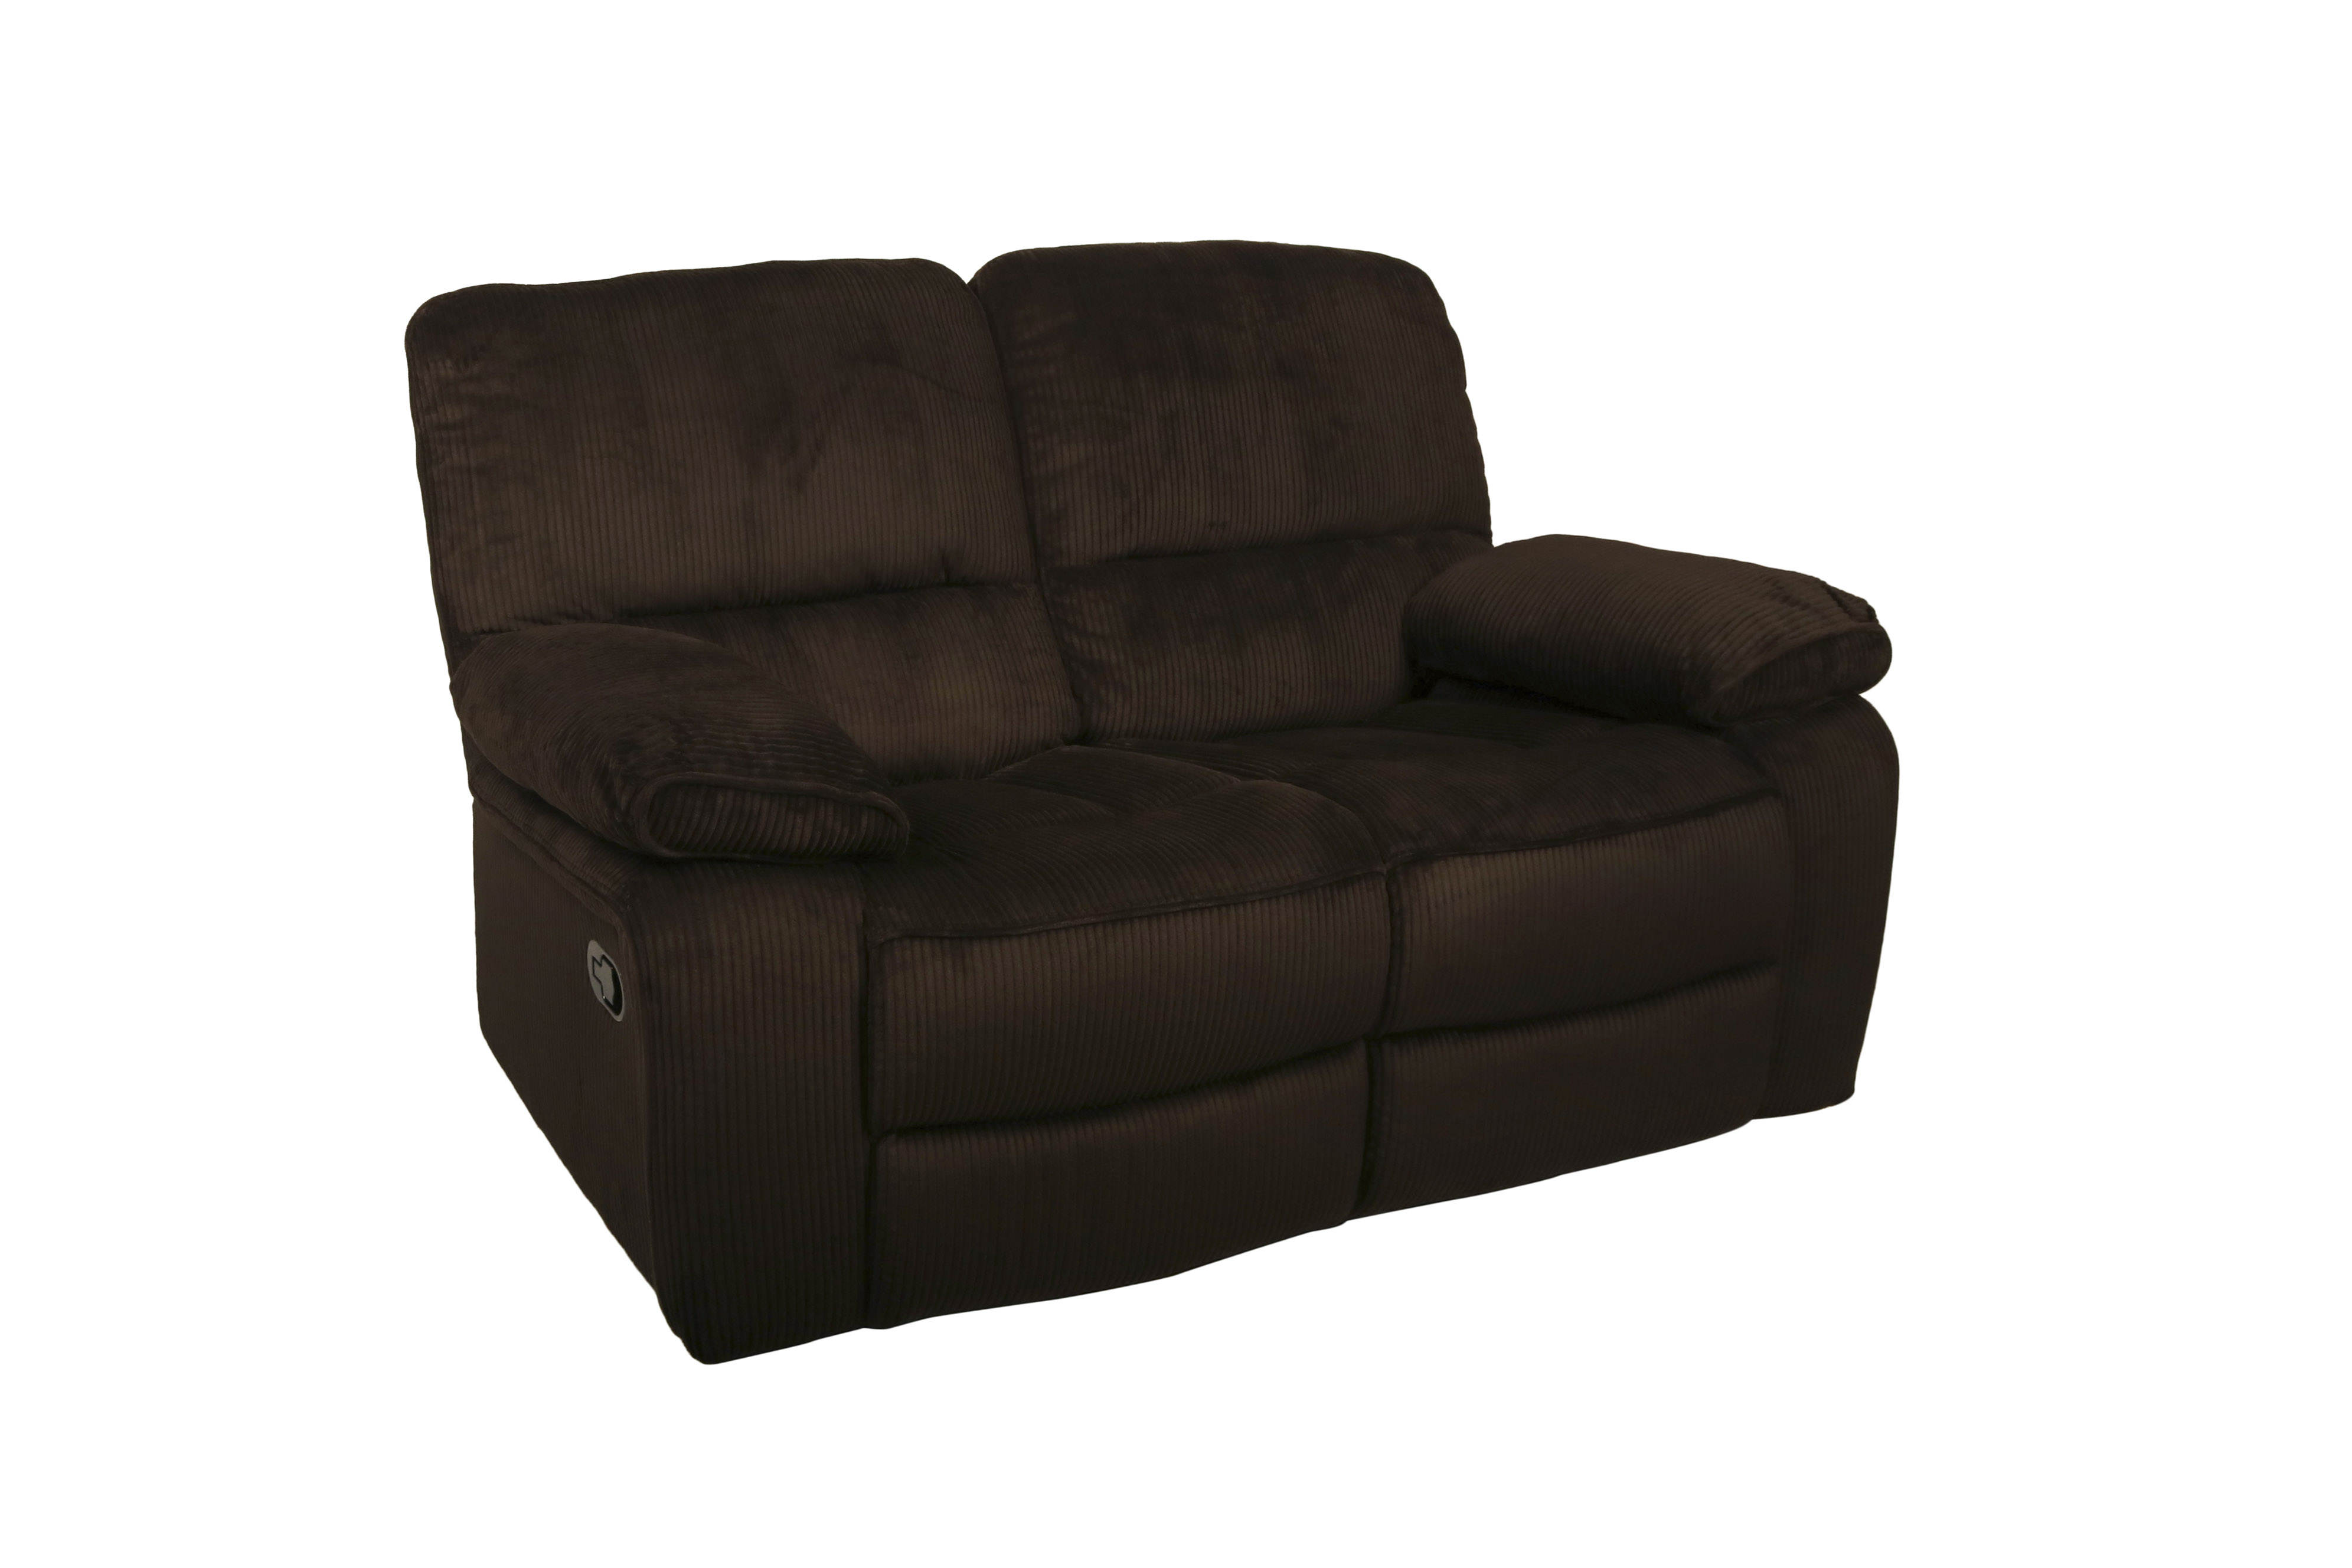 Pleasing New Classic Furniture Walker Mink Brown Dual Recliner Onthecornerstone Fun Painted Chair Ideas Images Onthecornerstoneorg